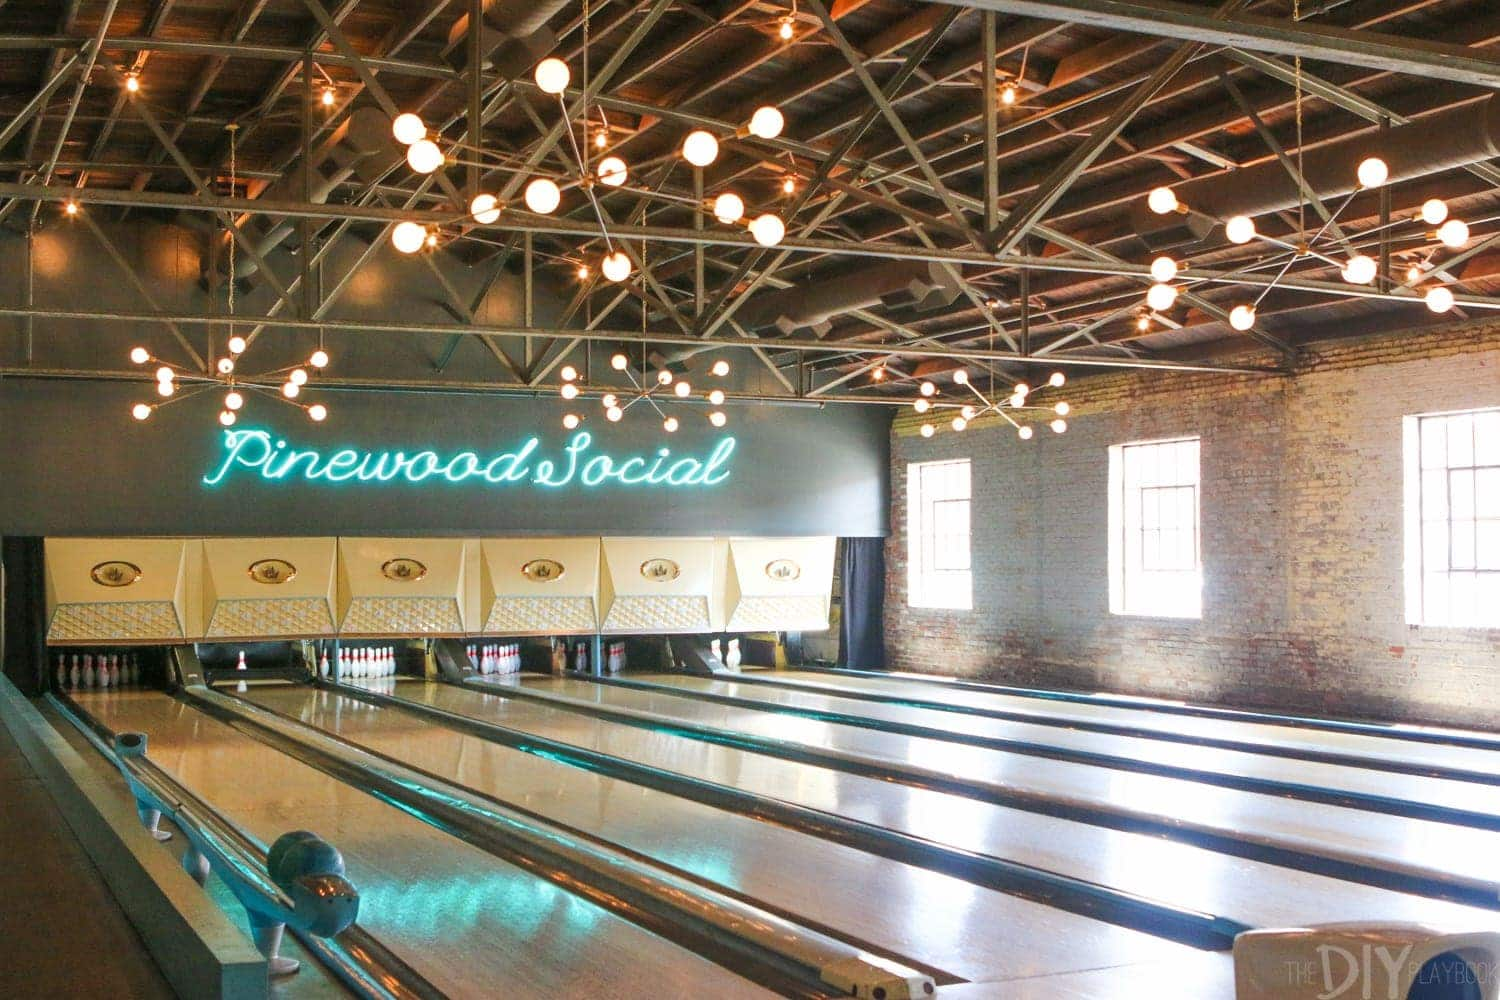 Travel_Nashville_pinewood_social_bowling